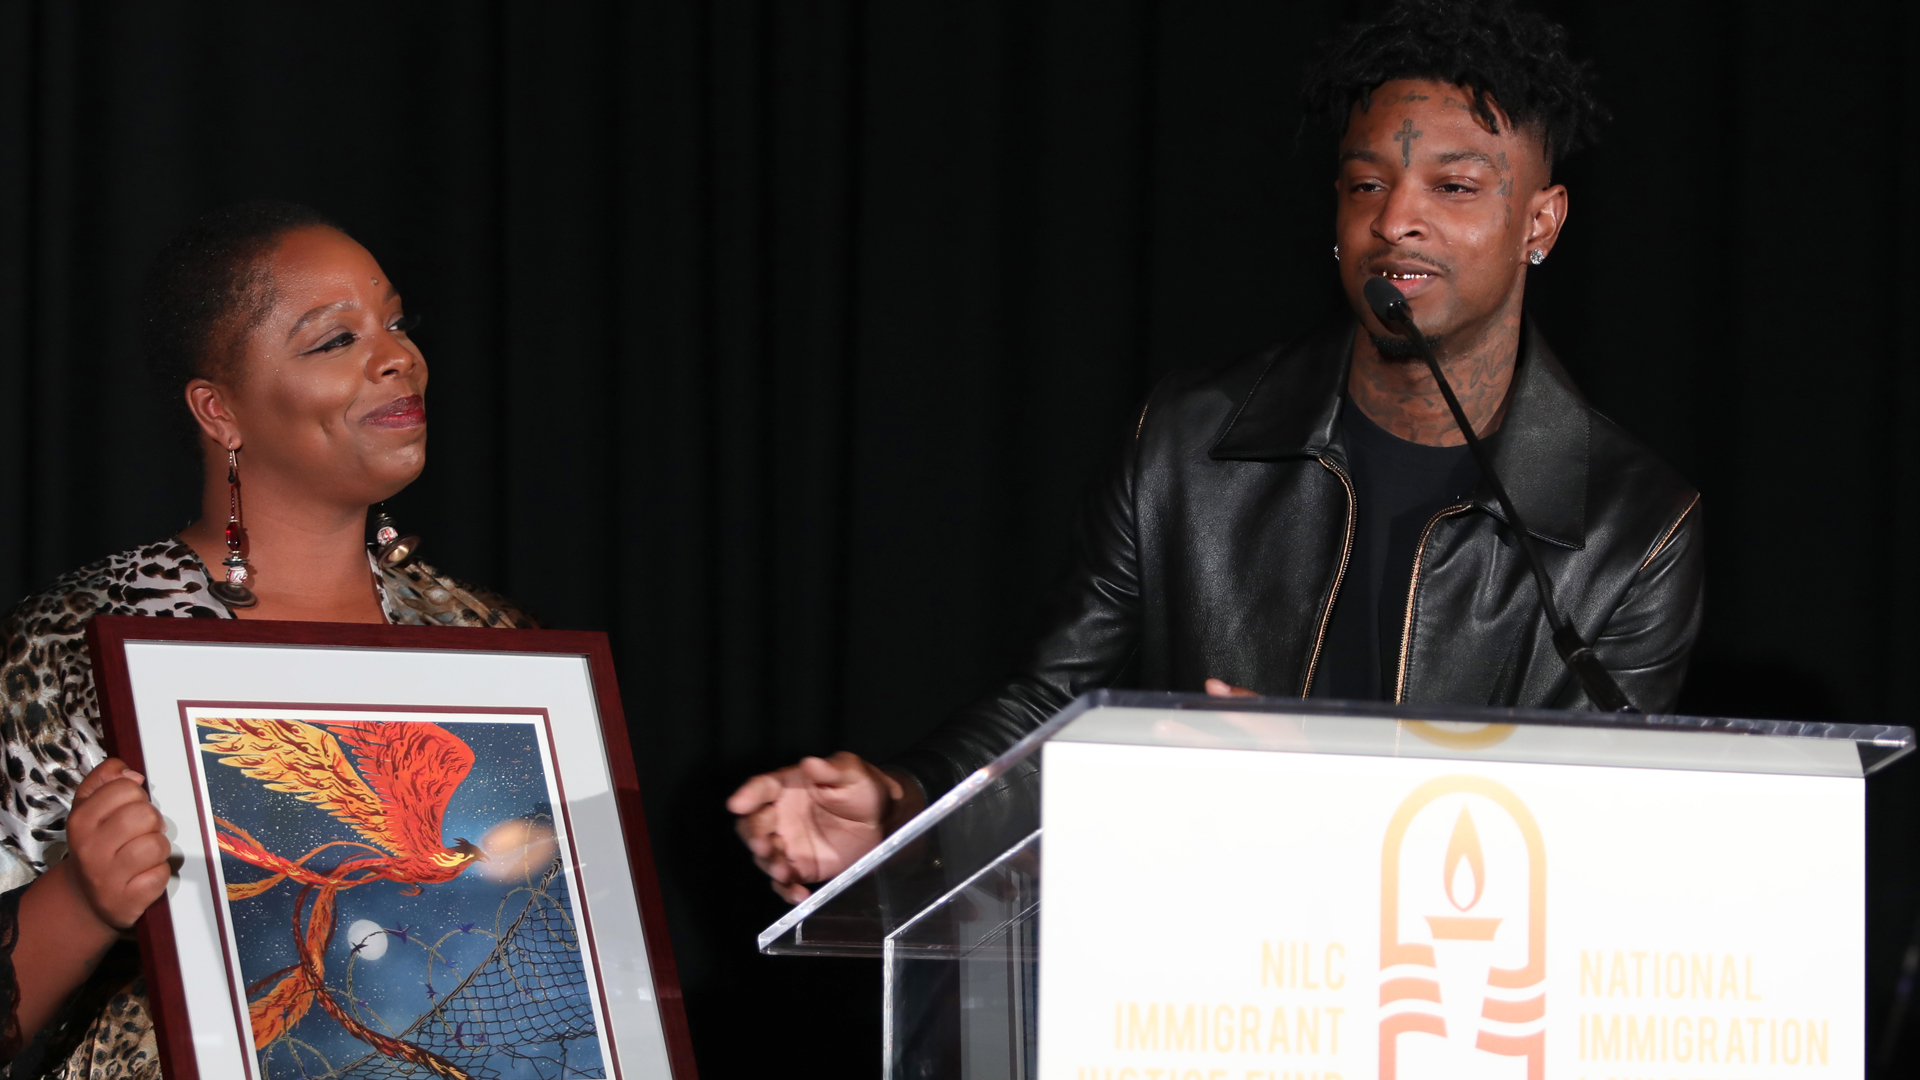 Patrisse Cullors, co-founder of Black Lives Matter presents 21 Savage with an award at the National Immigration Law Center's Courageous Luminaries Awards on Oct. 3, 2019 in Los Angeles. (Credit: Jerritt Clark/Getty Images for NILC)